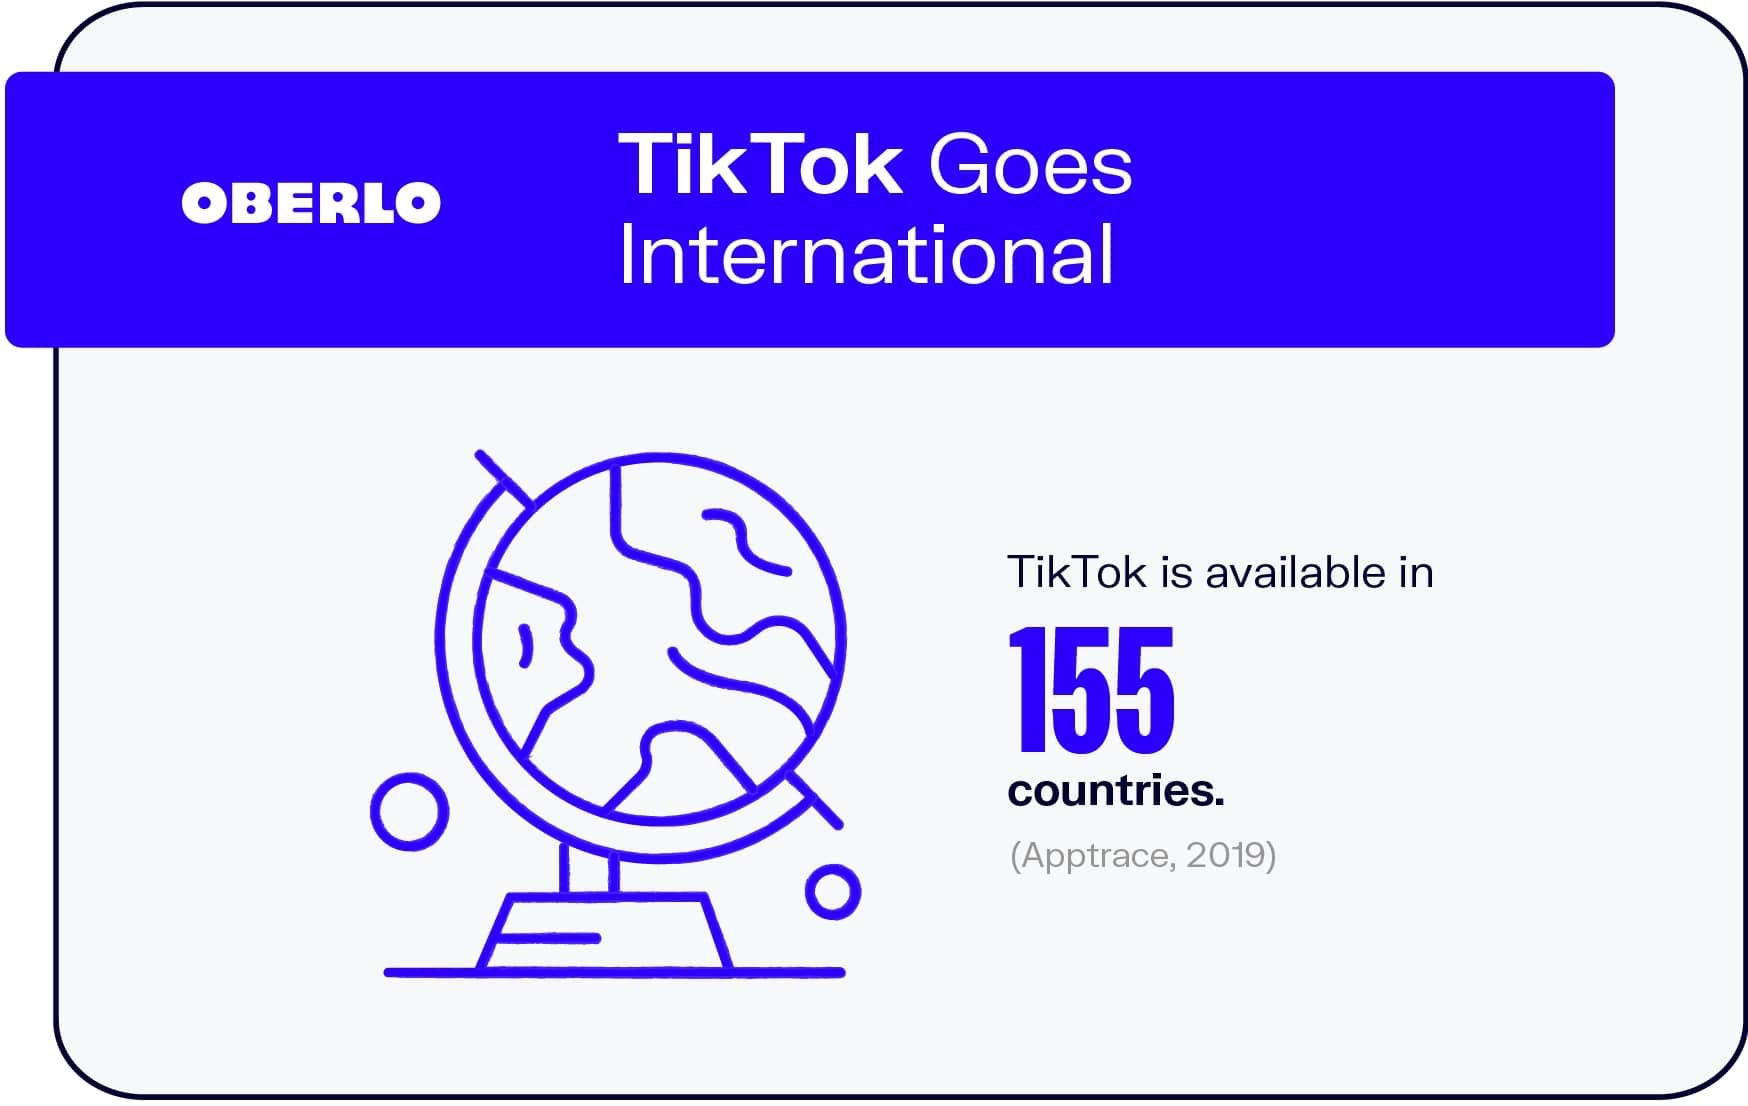 How Many Countries Is TikTok Available In?